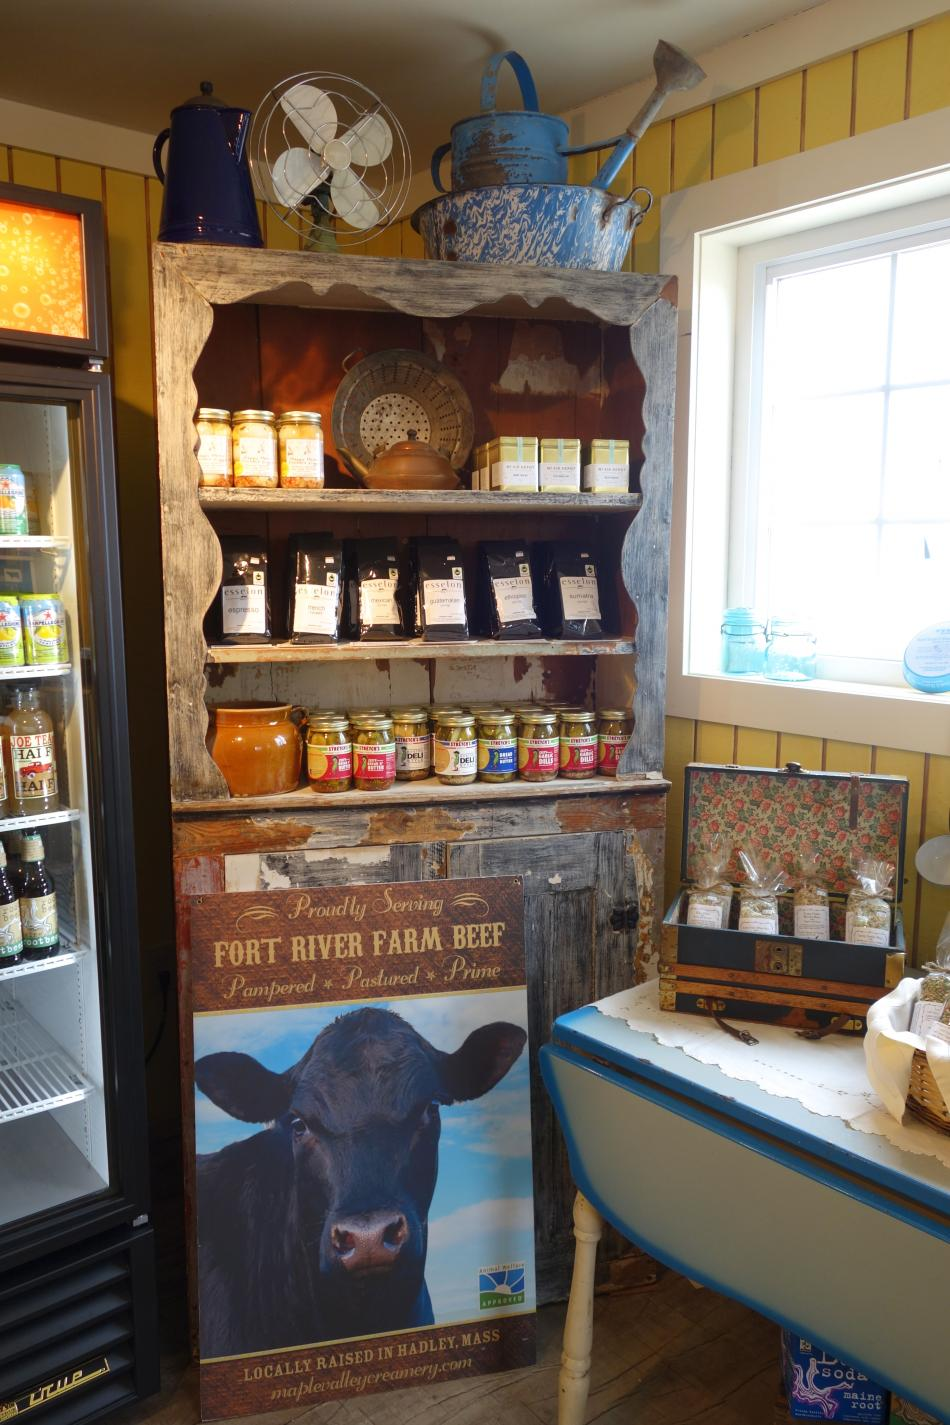 Mill Valley Farm Store